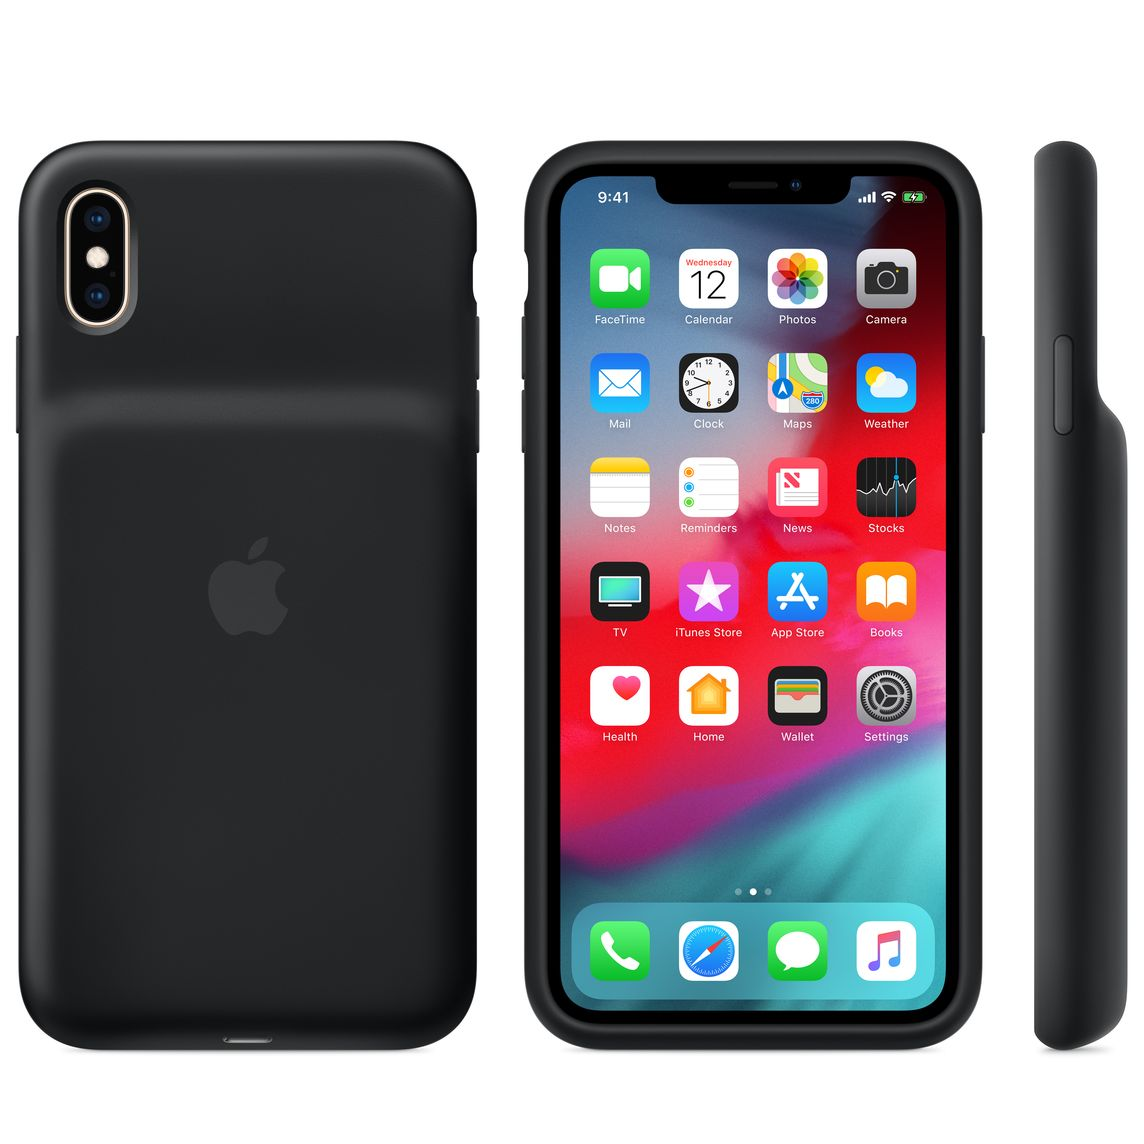 timeless design 91f7e 94b53 iPhone XS Max Smart Battery Case - Black